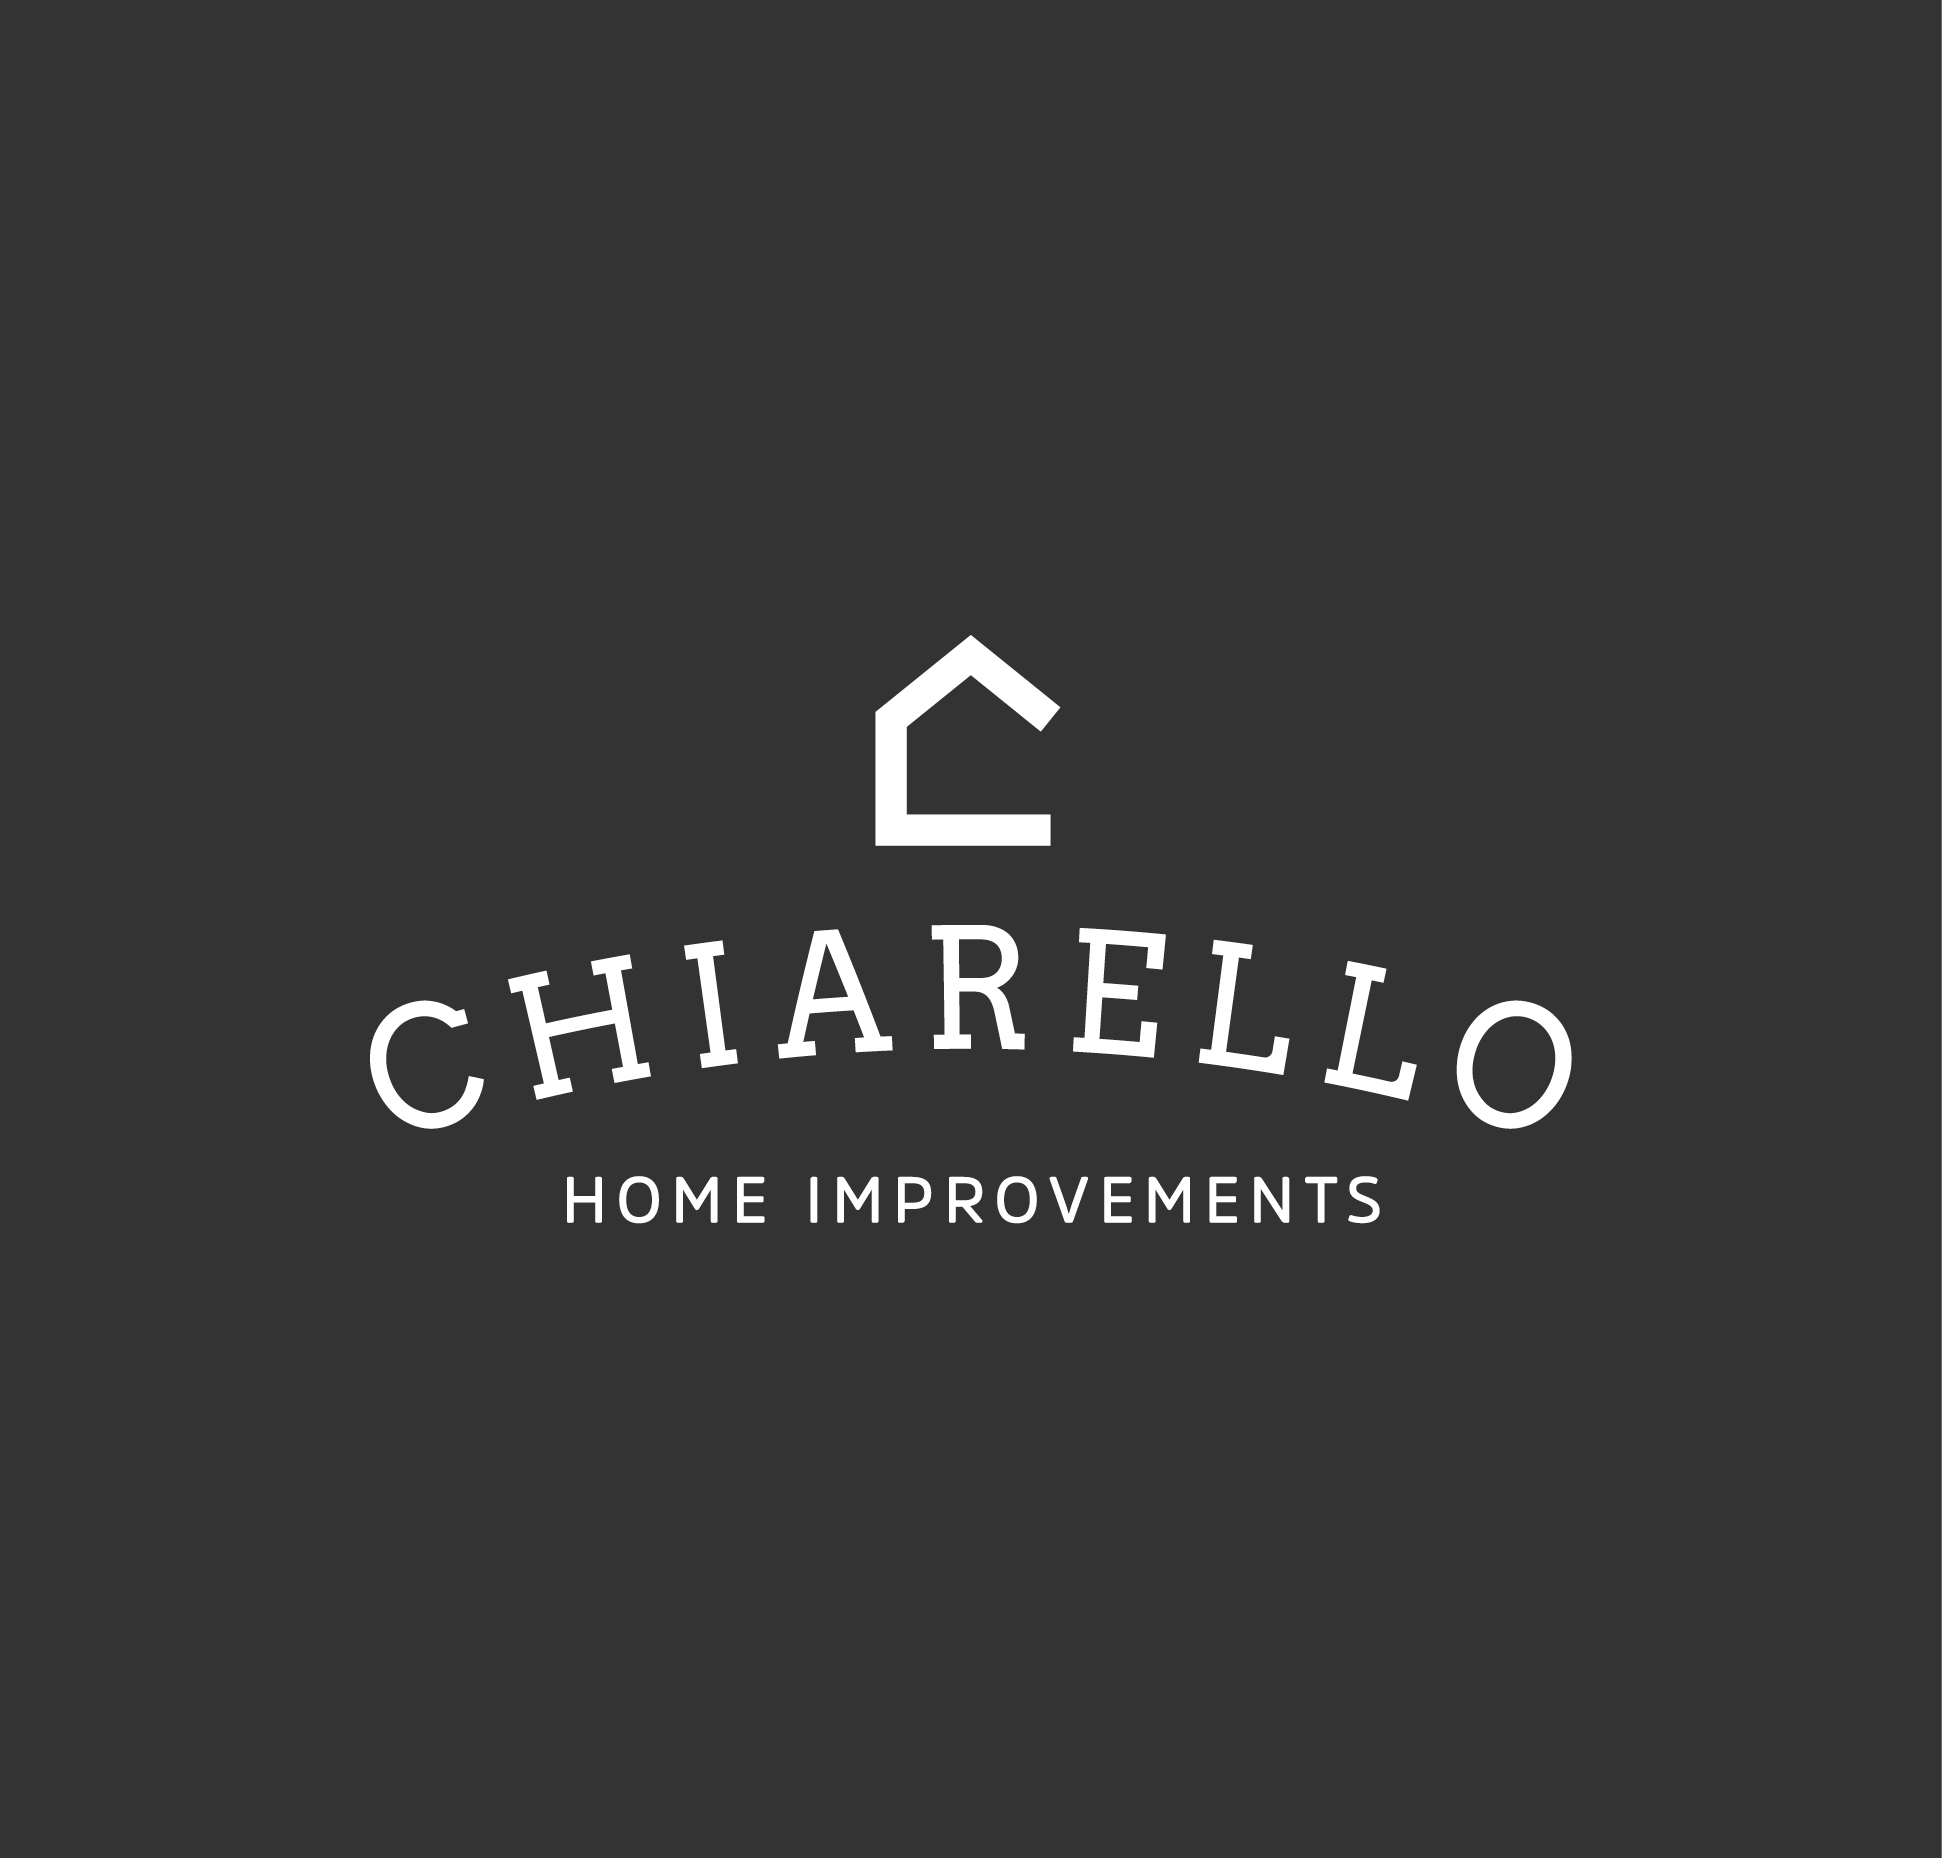 chiarello-home-improvements-logo-brand-sputnik-design-partners-toronto.jpg